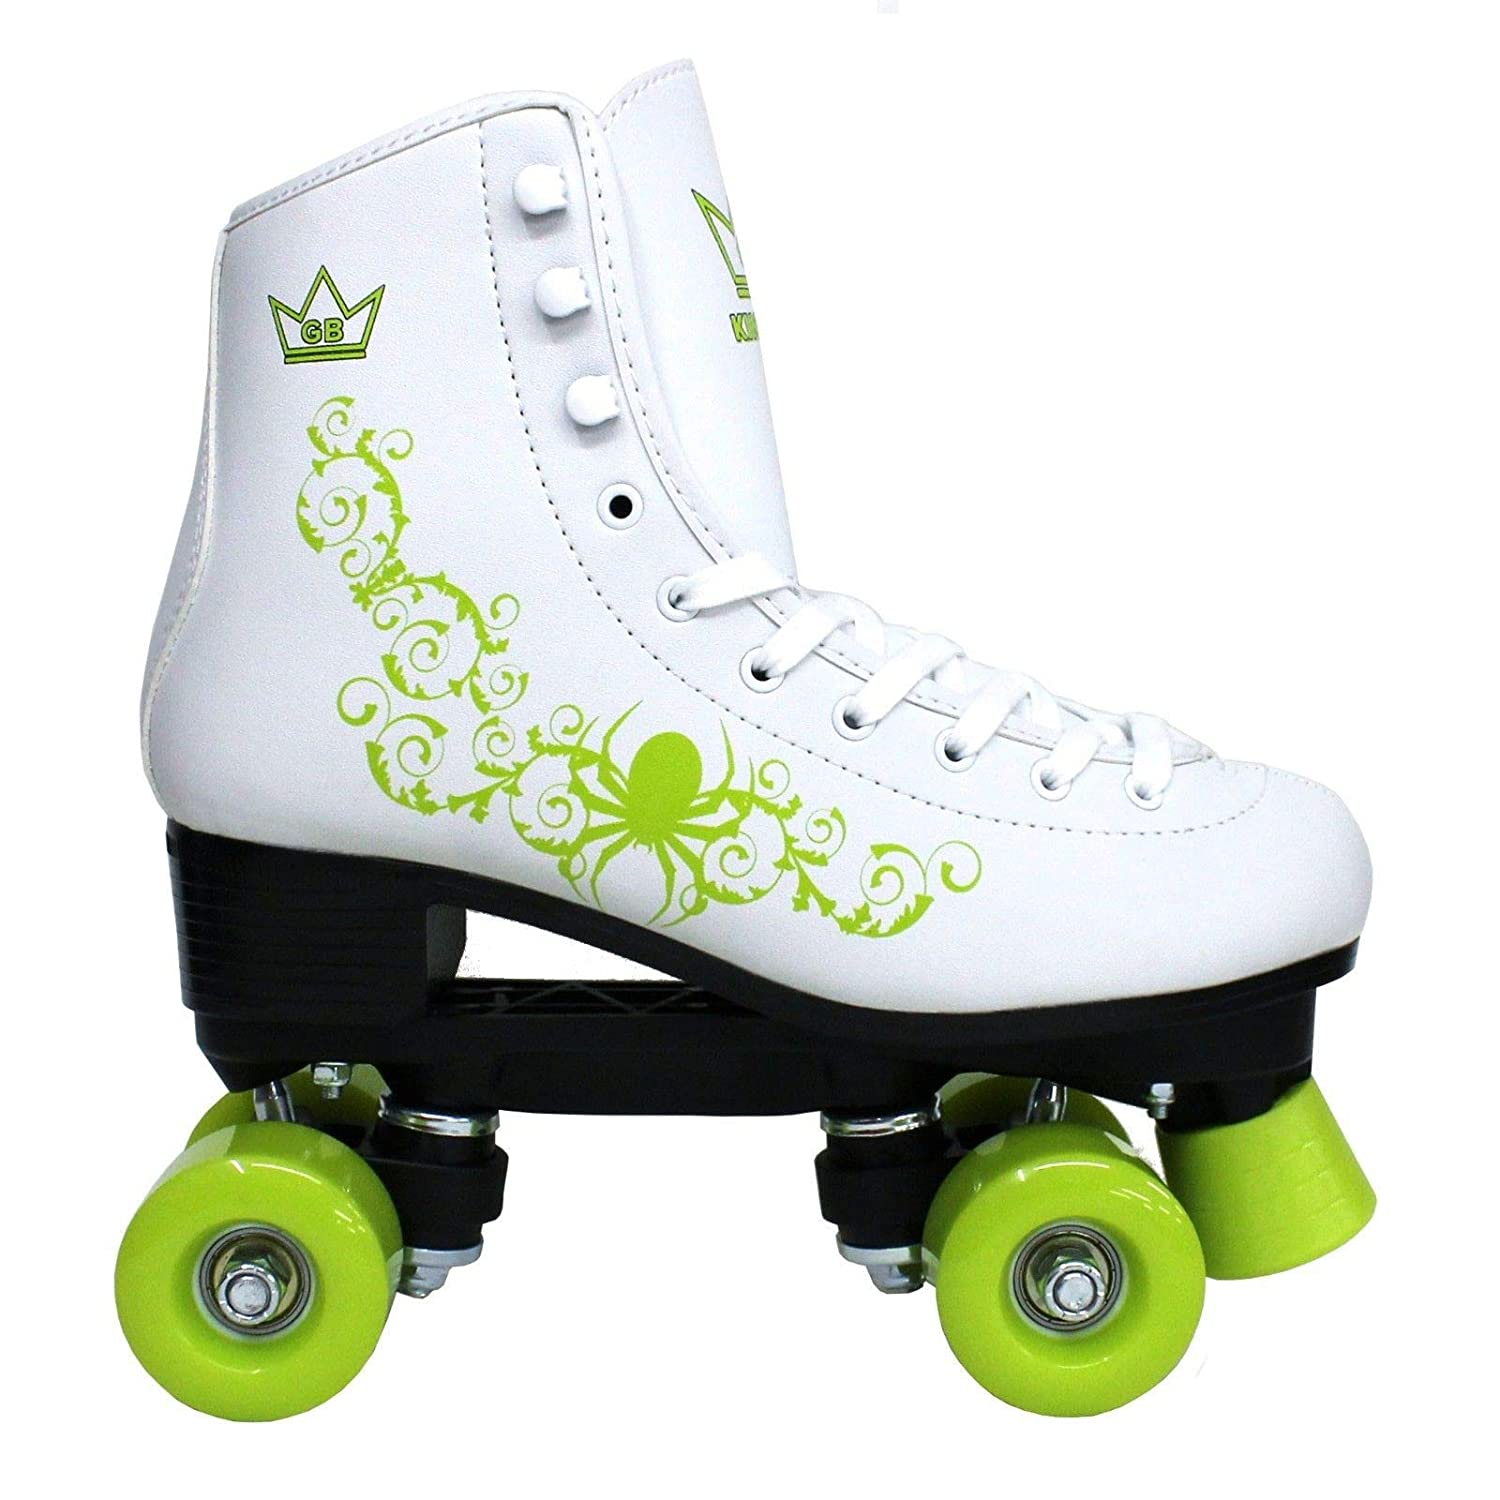 TALLA 29 EU. Kingdom GB Patines de Ruedas Vector Quad Wheels